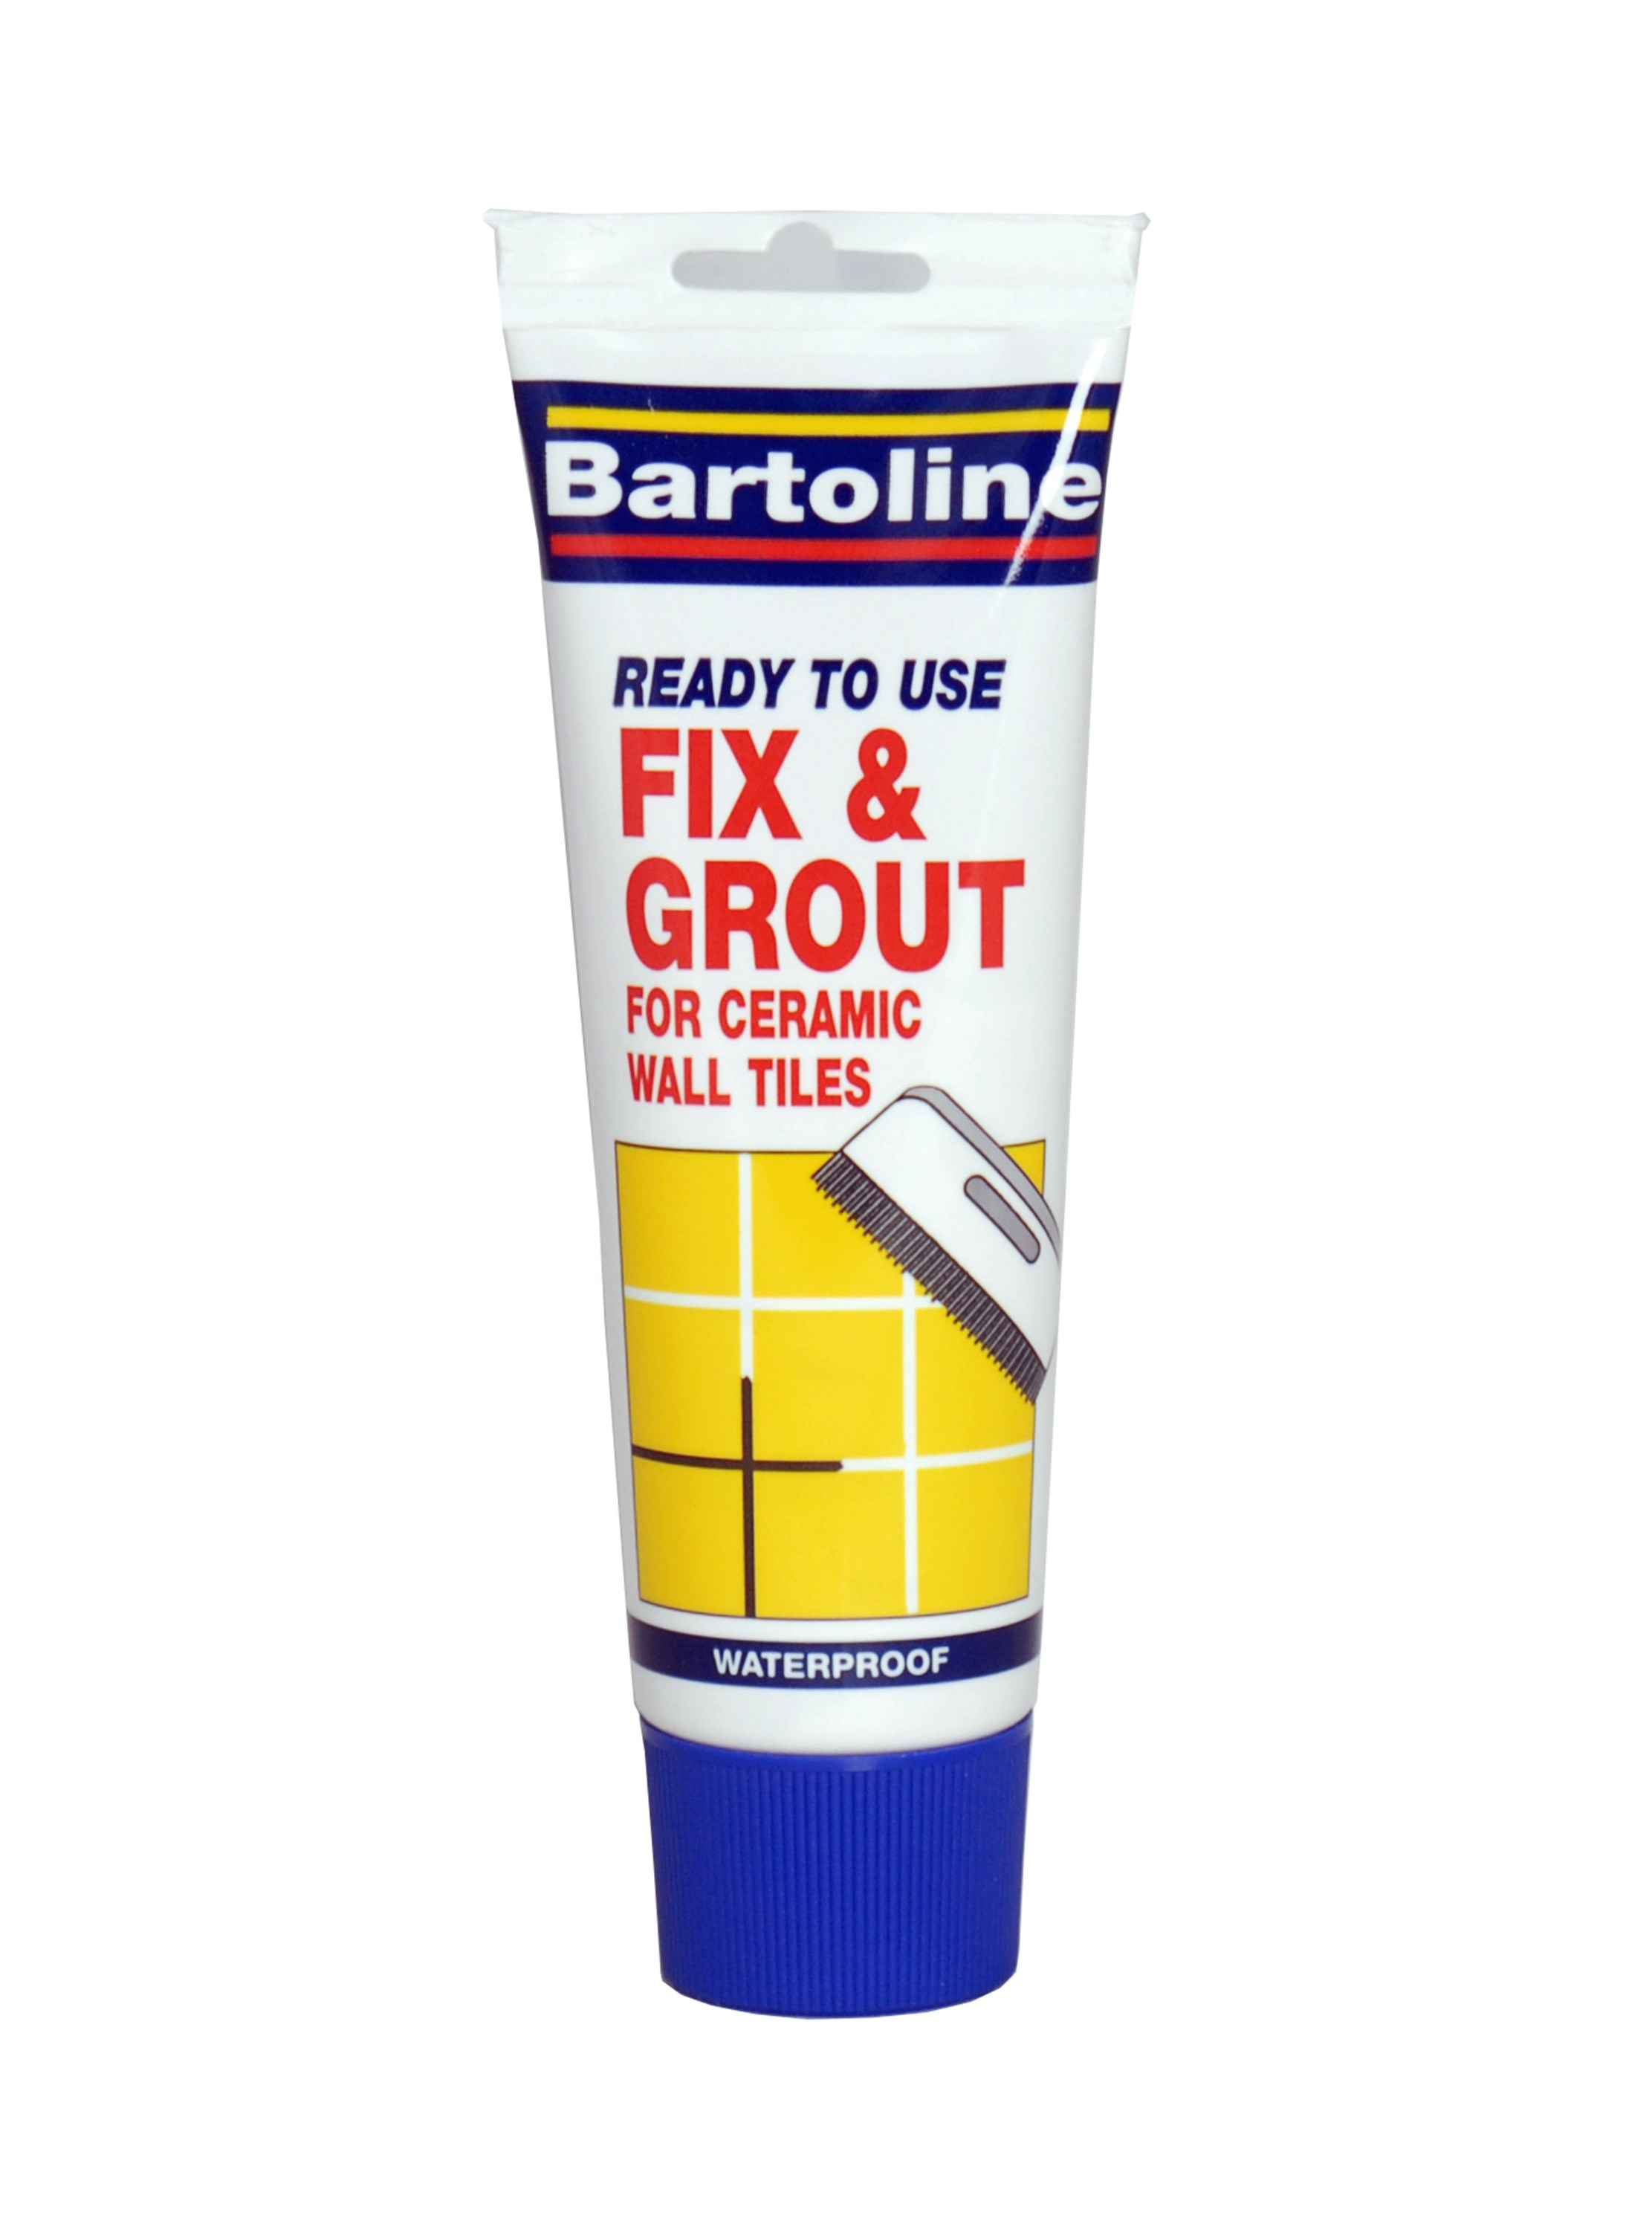 Bartoline  Fix & Grout Tile Adhesive - 330g